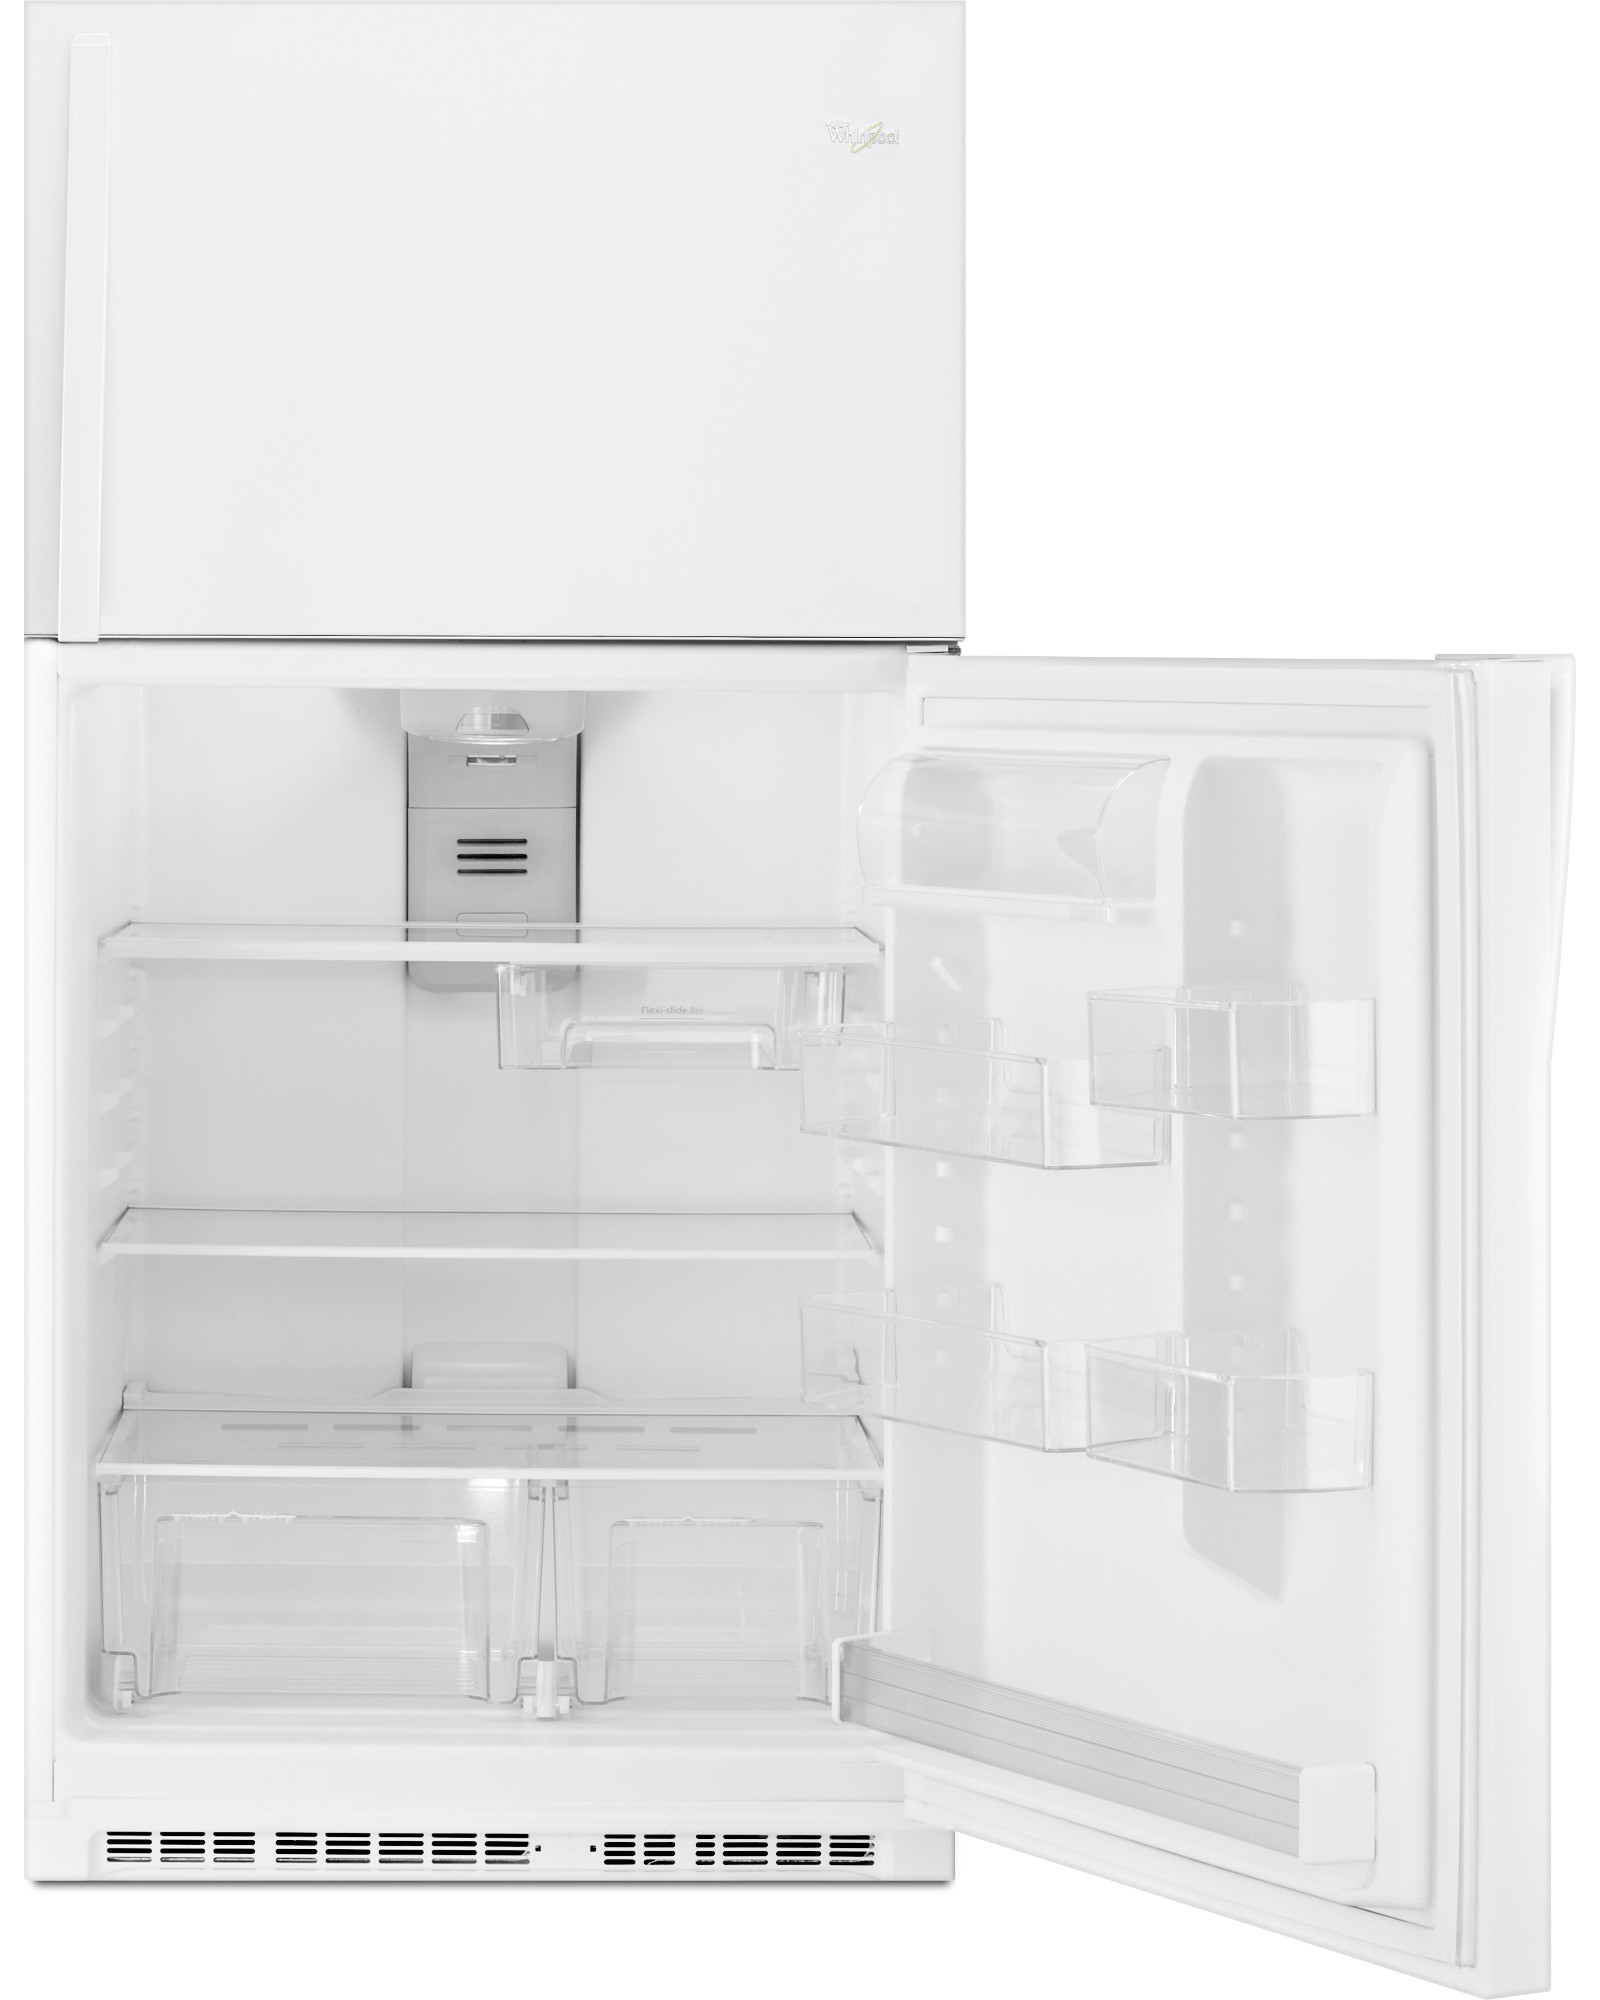 Whirlpool WRT541SZDW 21 cu. ft. Top Freezer Refrigerator - White